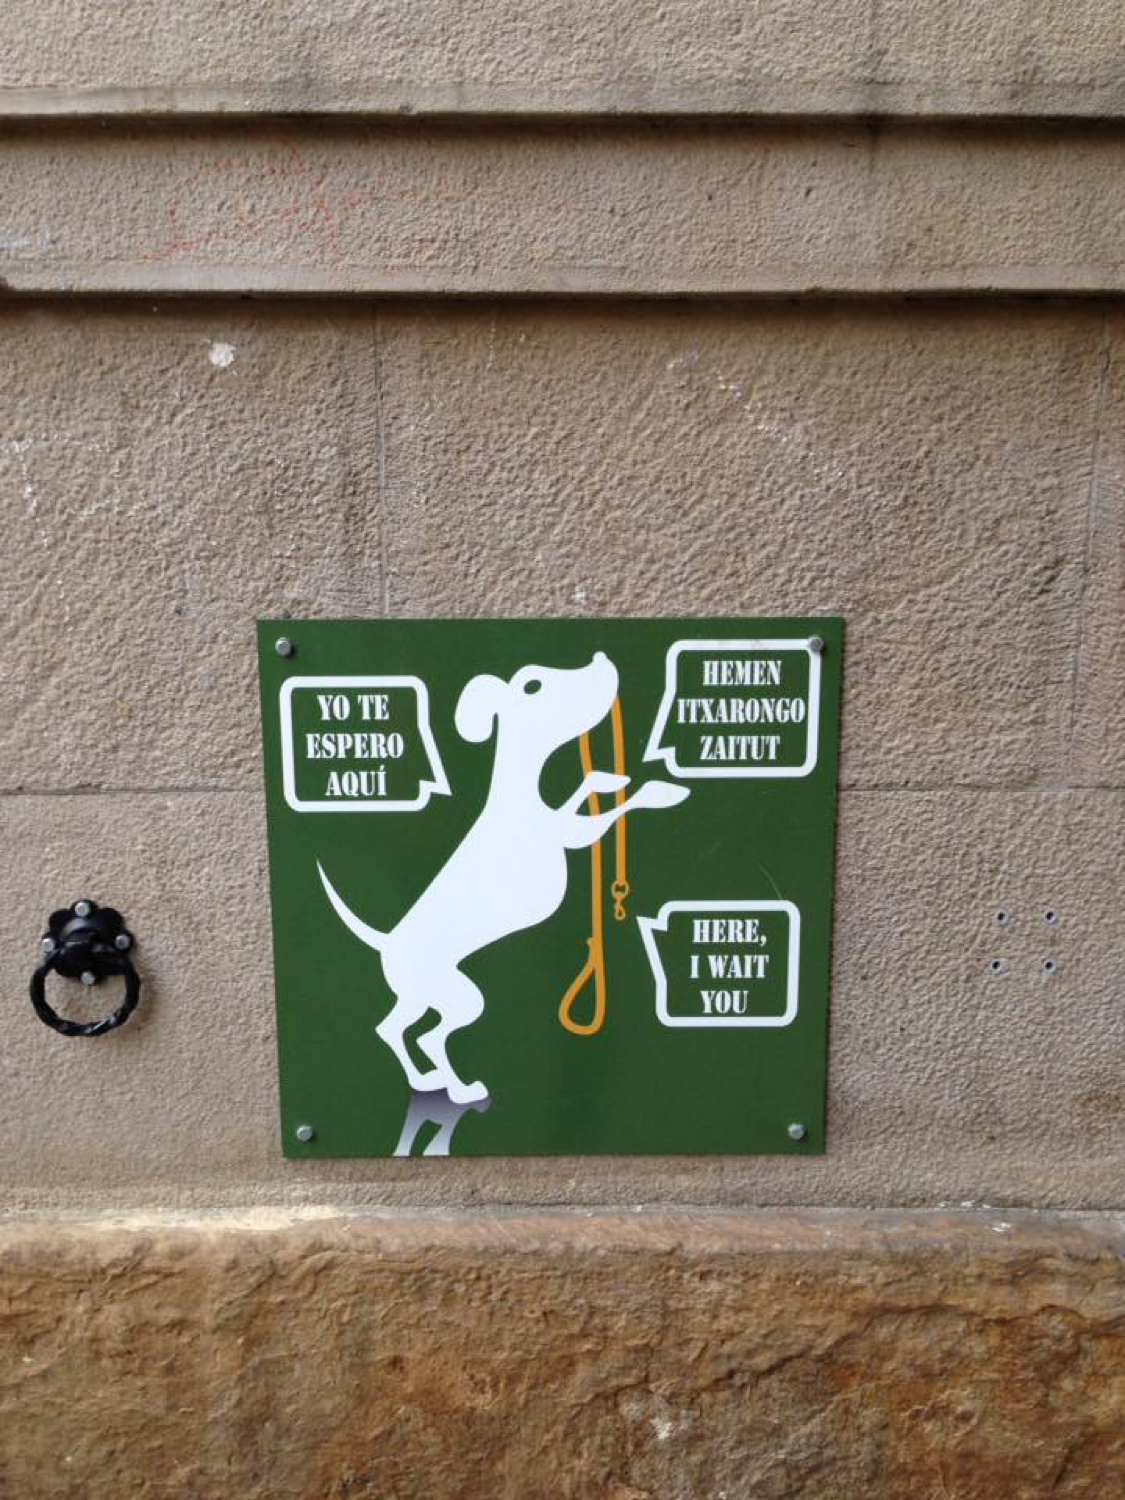 A sign asking owners to keep dogs on leashes and walking them. Instead dogs walk themselves.